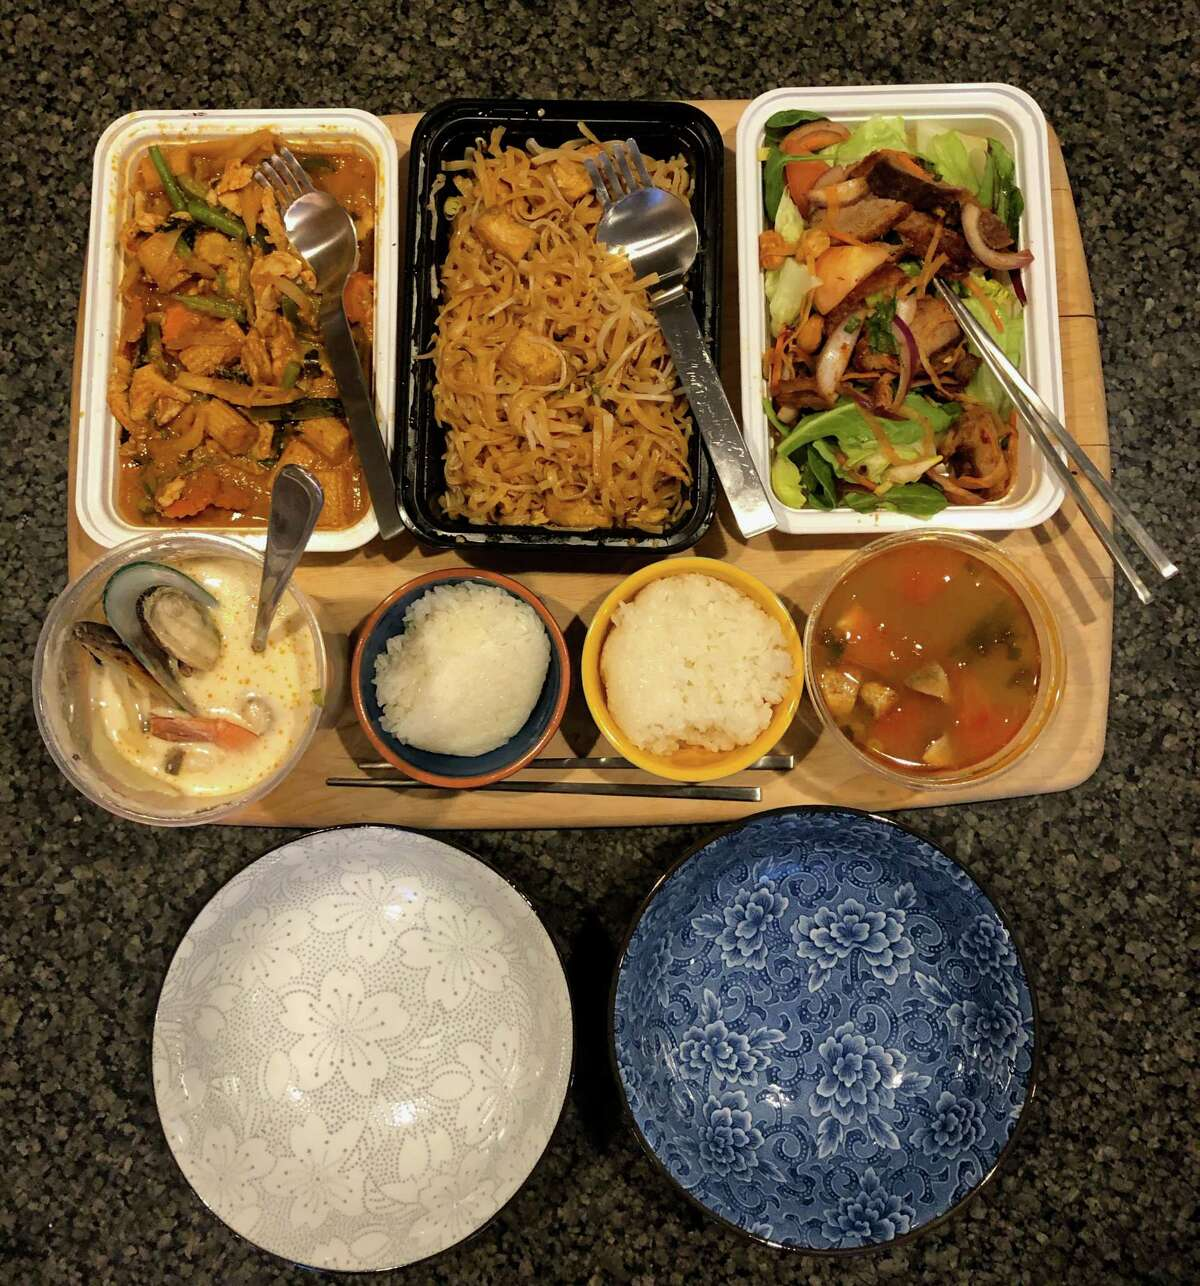 Takeout from Celadon Thai in Latham.